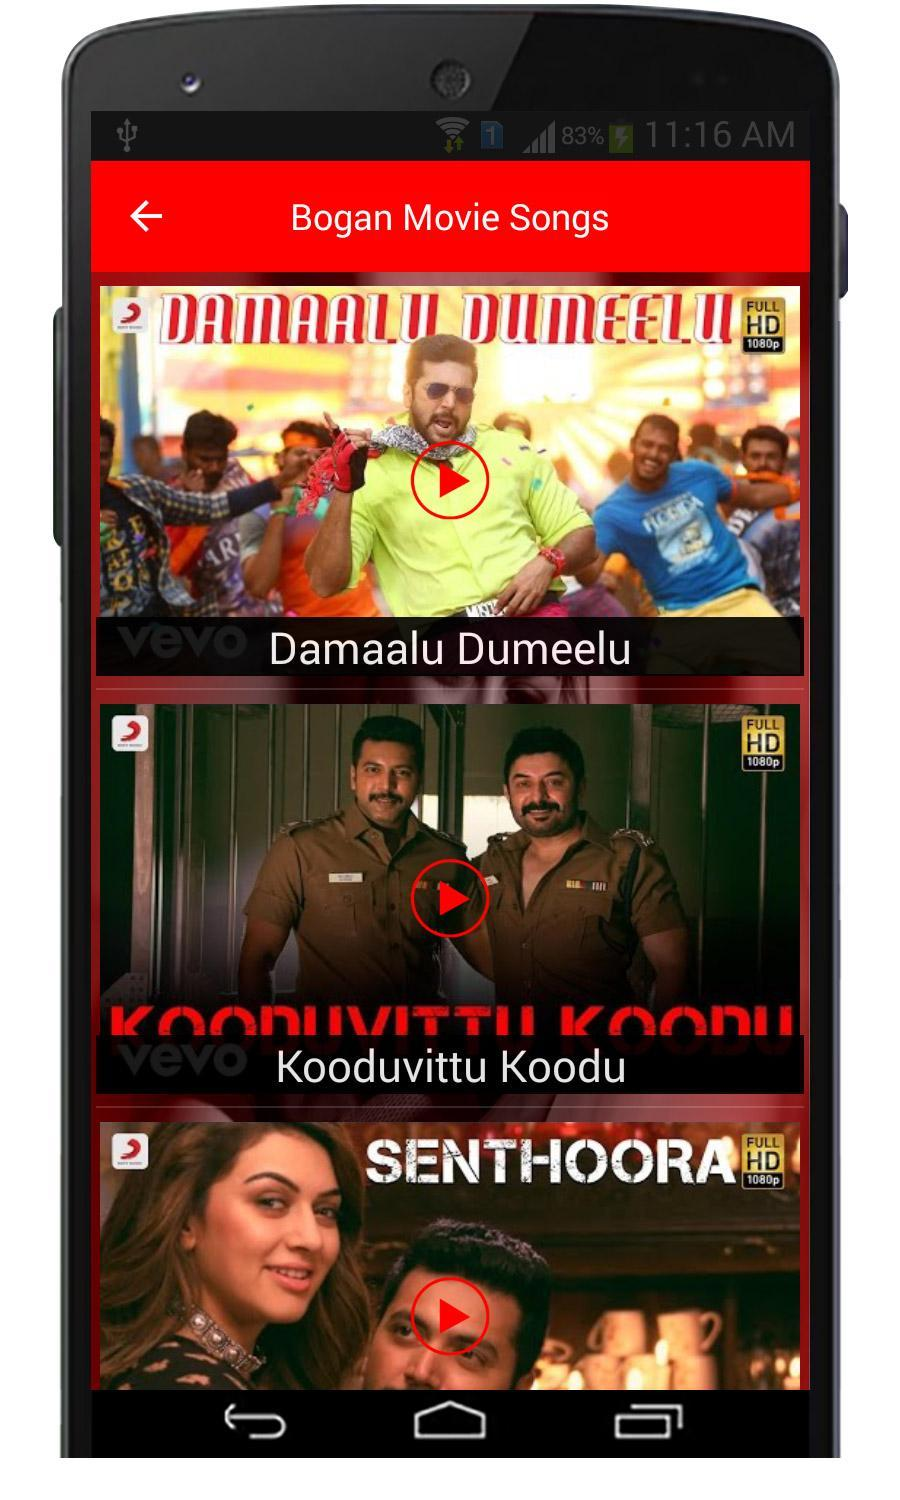 Bogan Tamil Movie Songs for Android - APK Download